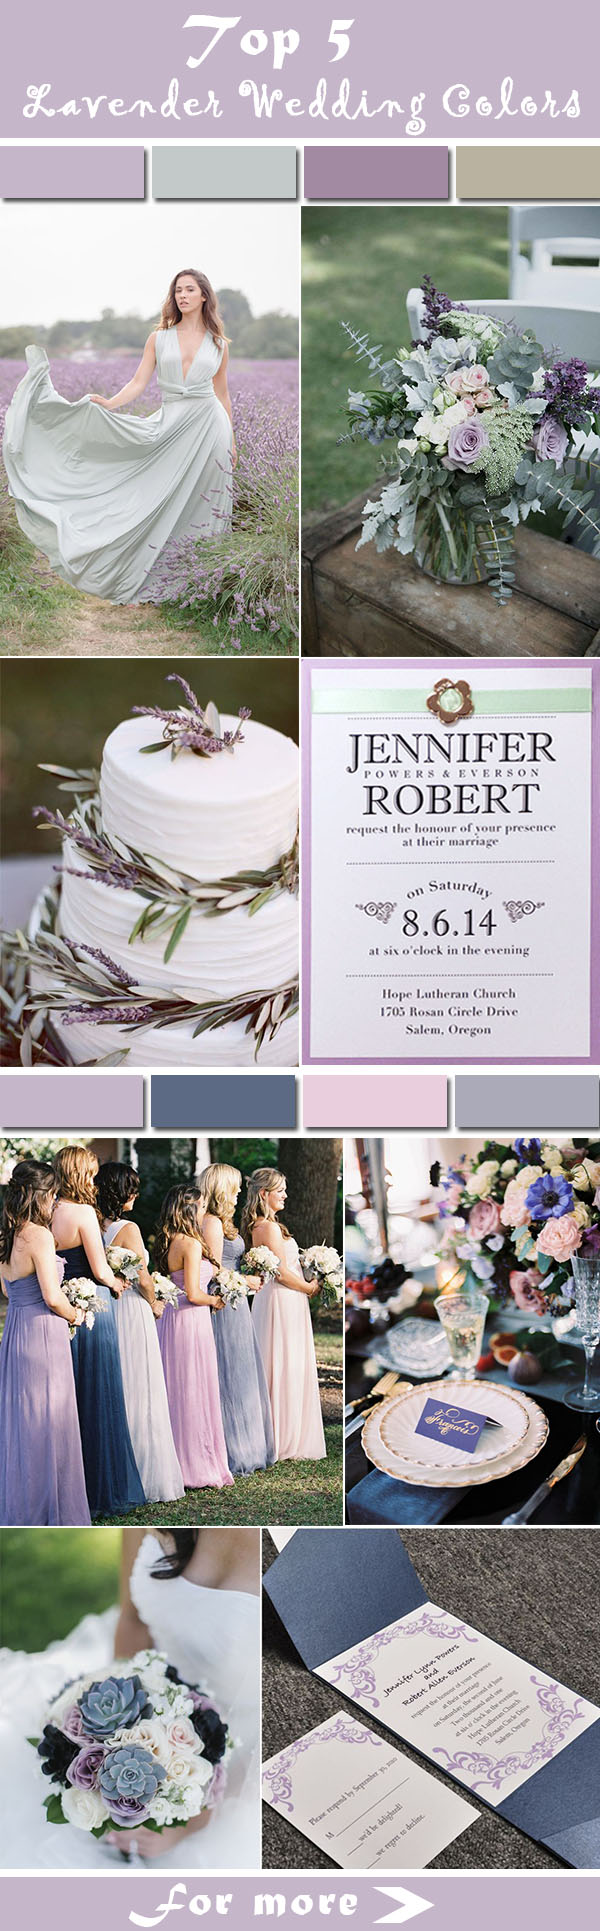 5 Most Popular Lavender Wedding Colors #ElegantWeddinginvites